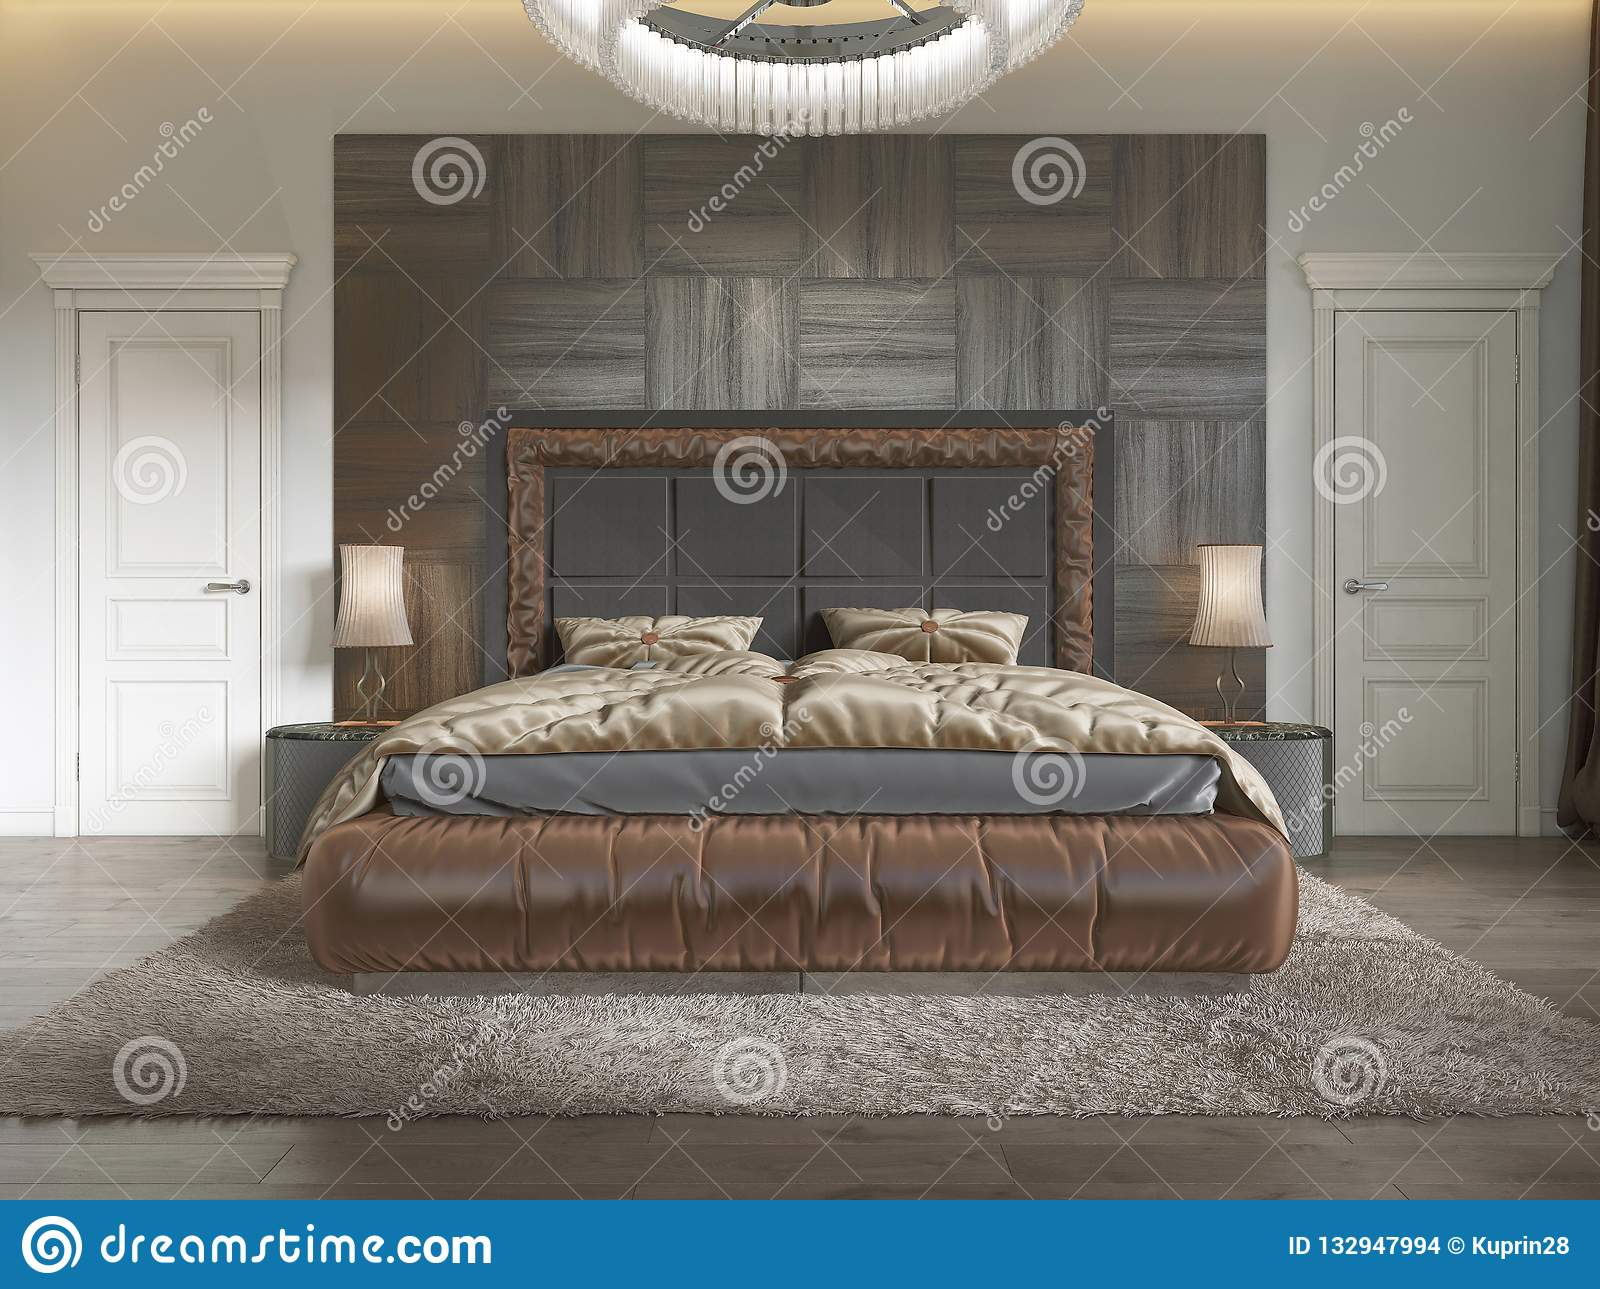 Modern Luxury Bed In Art Deco Style With Quilt And Wooden